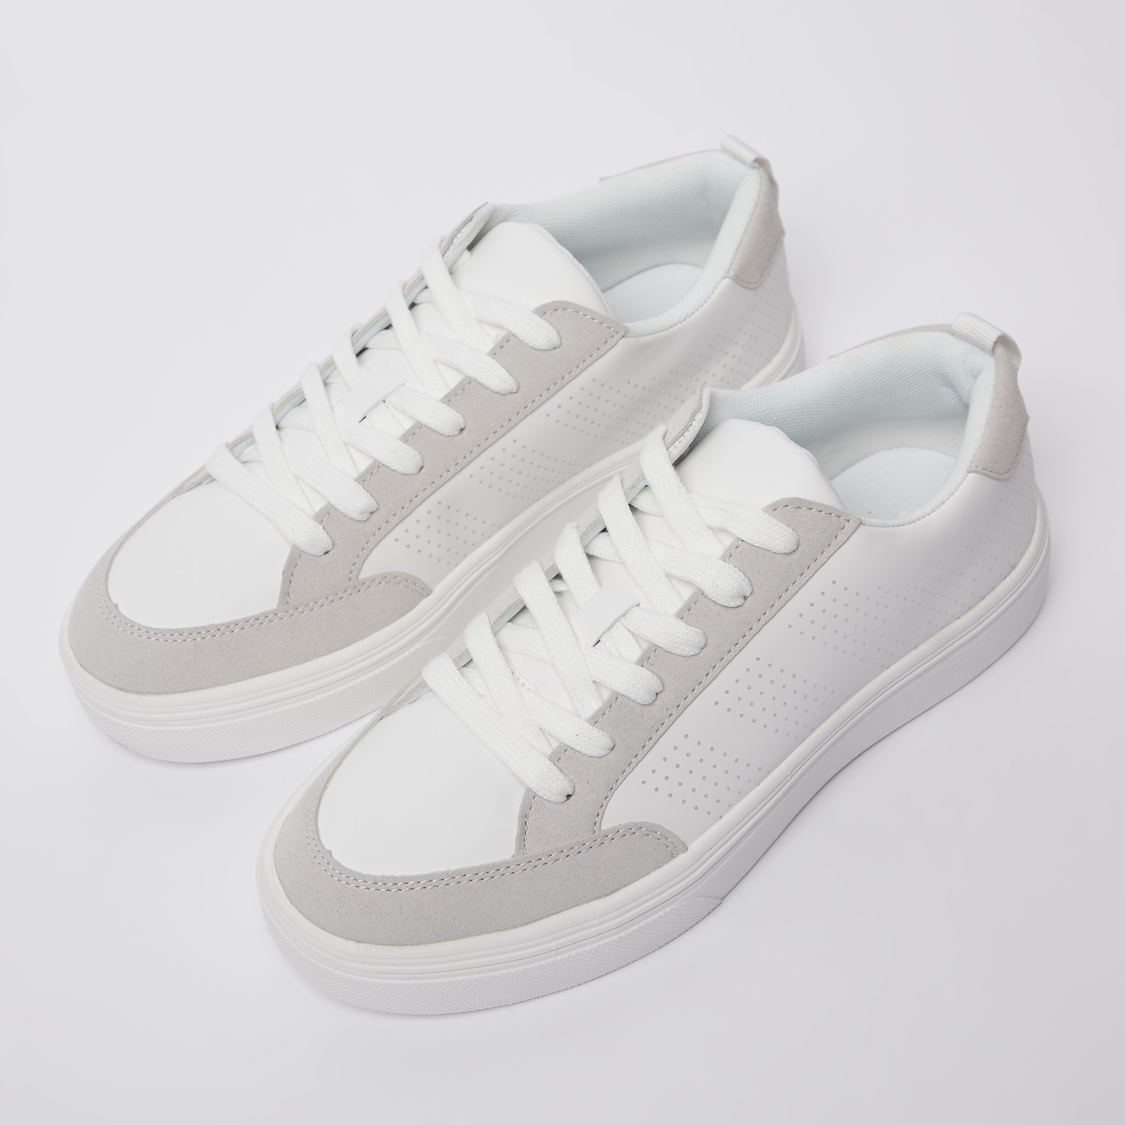 Perforated Sports Shoes with Lace-Up Closure and Pull Tab